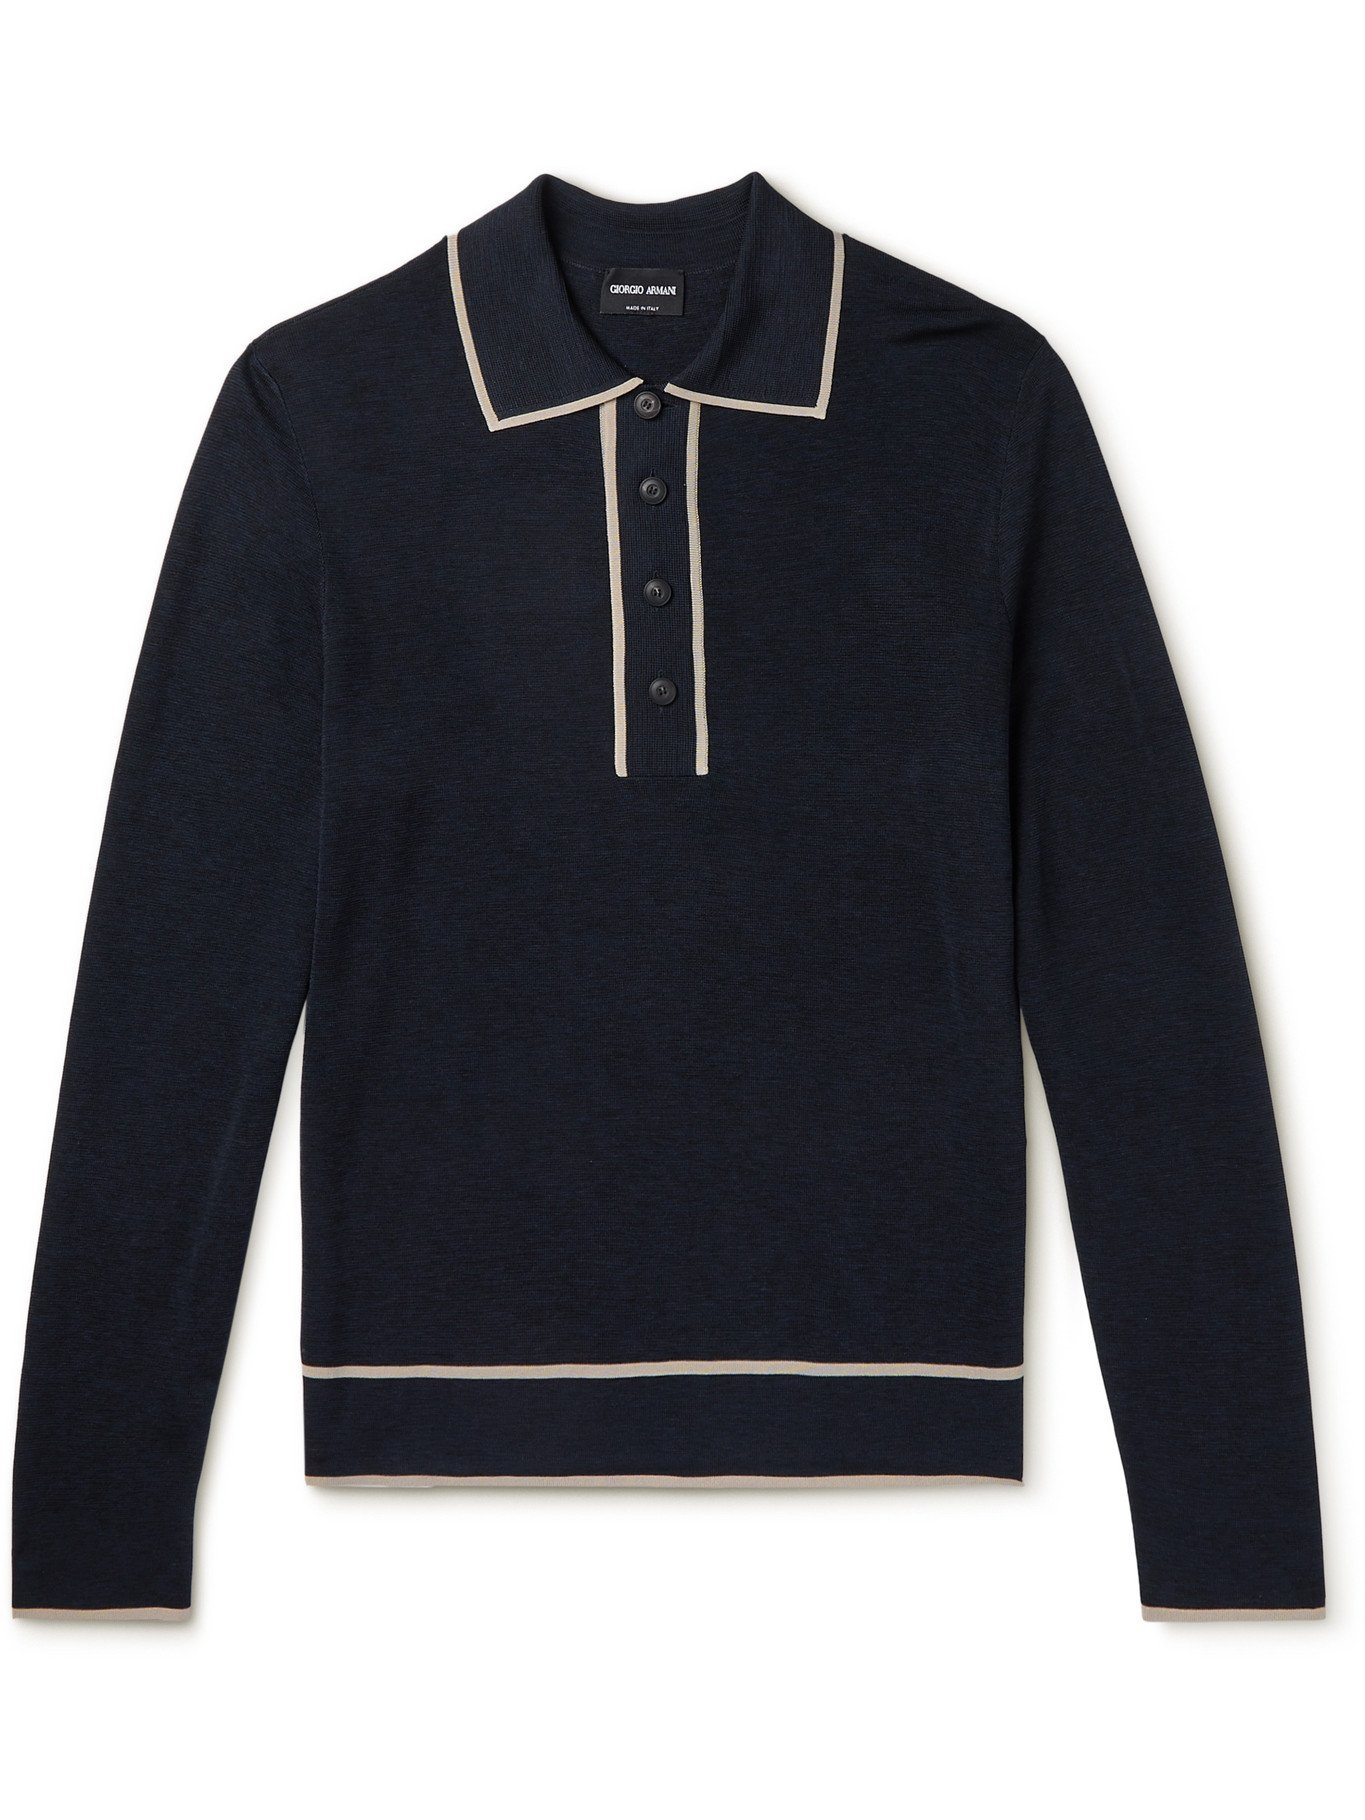 GIORGIO ARMANI - Contrast-Tipped Knitted Polo Shirt - Blue - IT 50